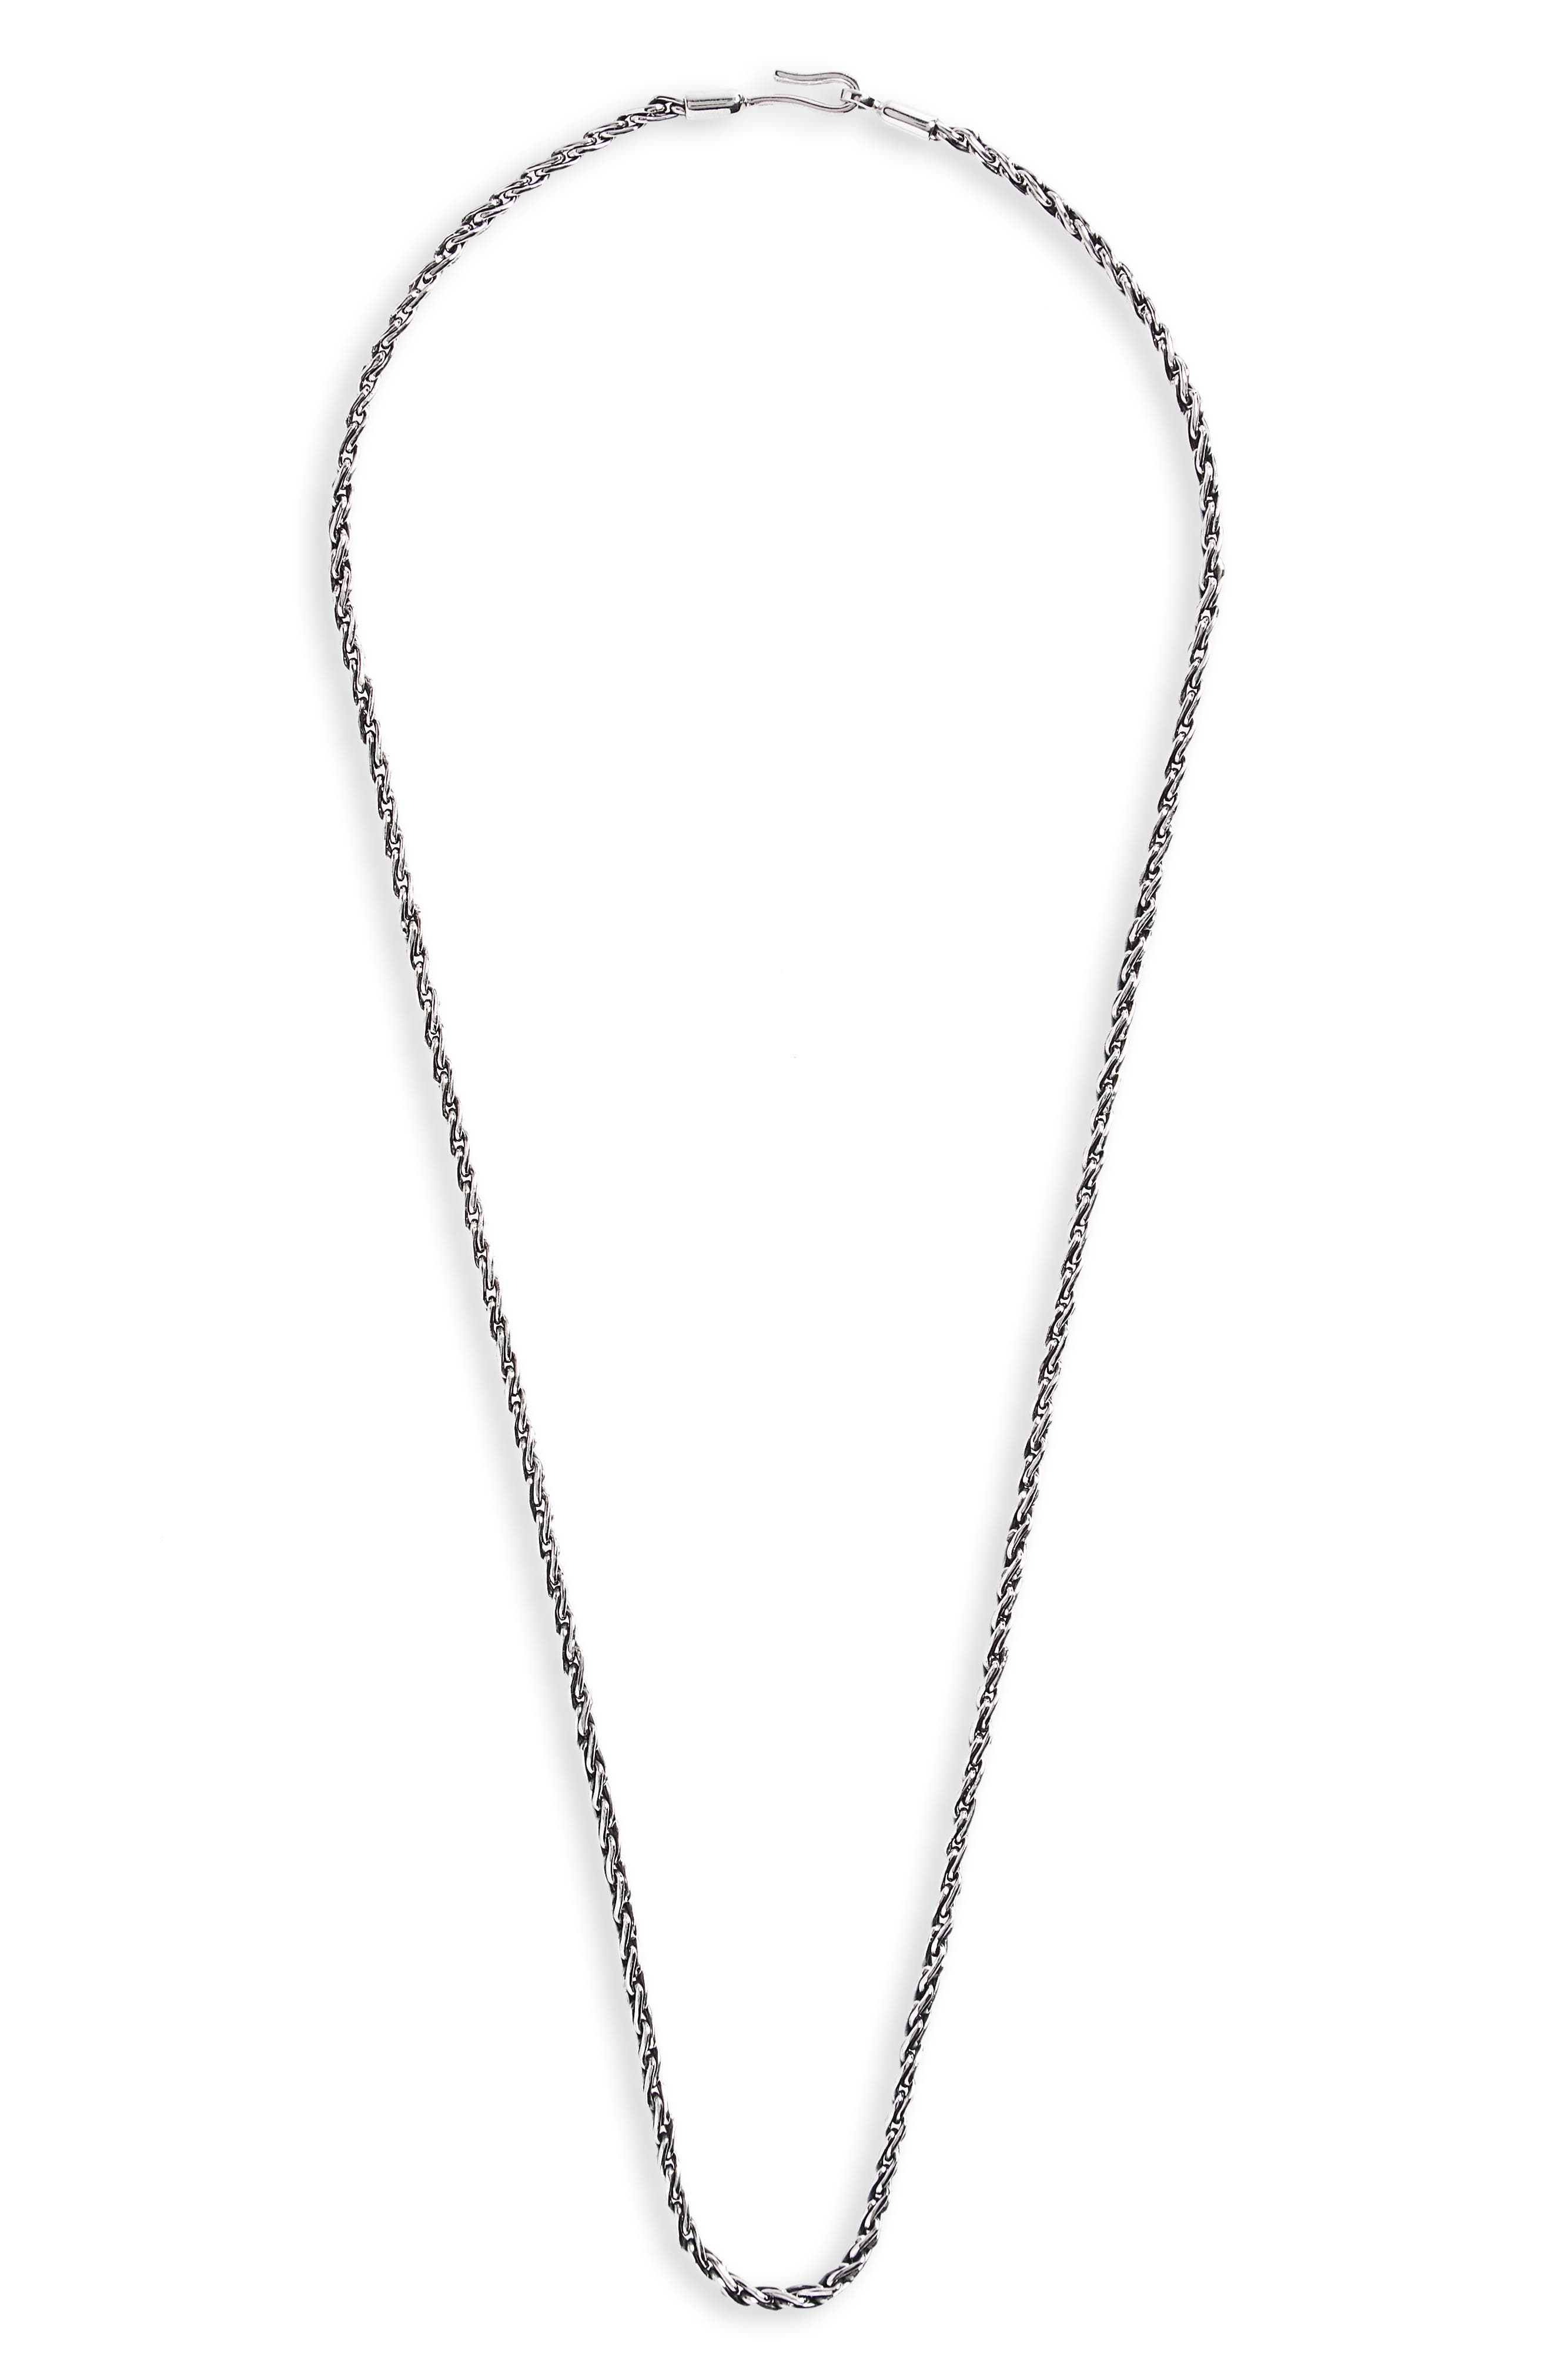 Sterling Silver Chain Necklace,                             Main thumbnail 1, color,                             Sterling Silver